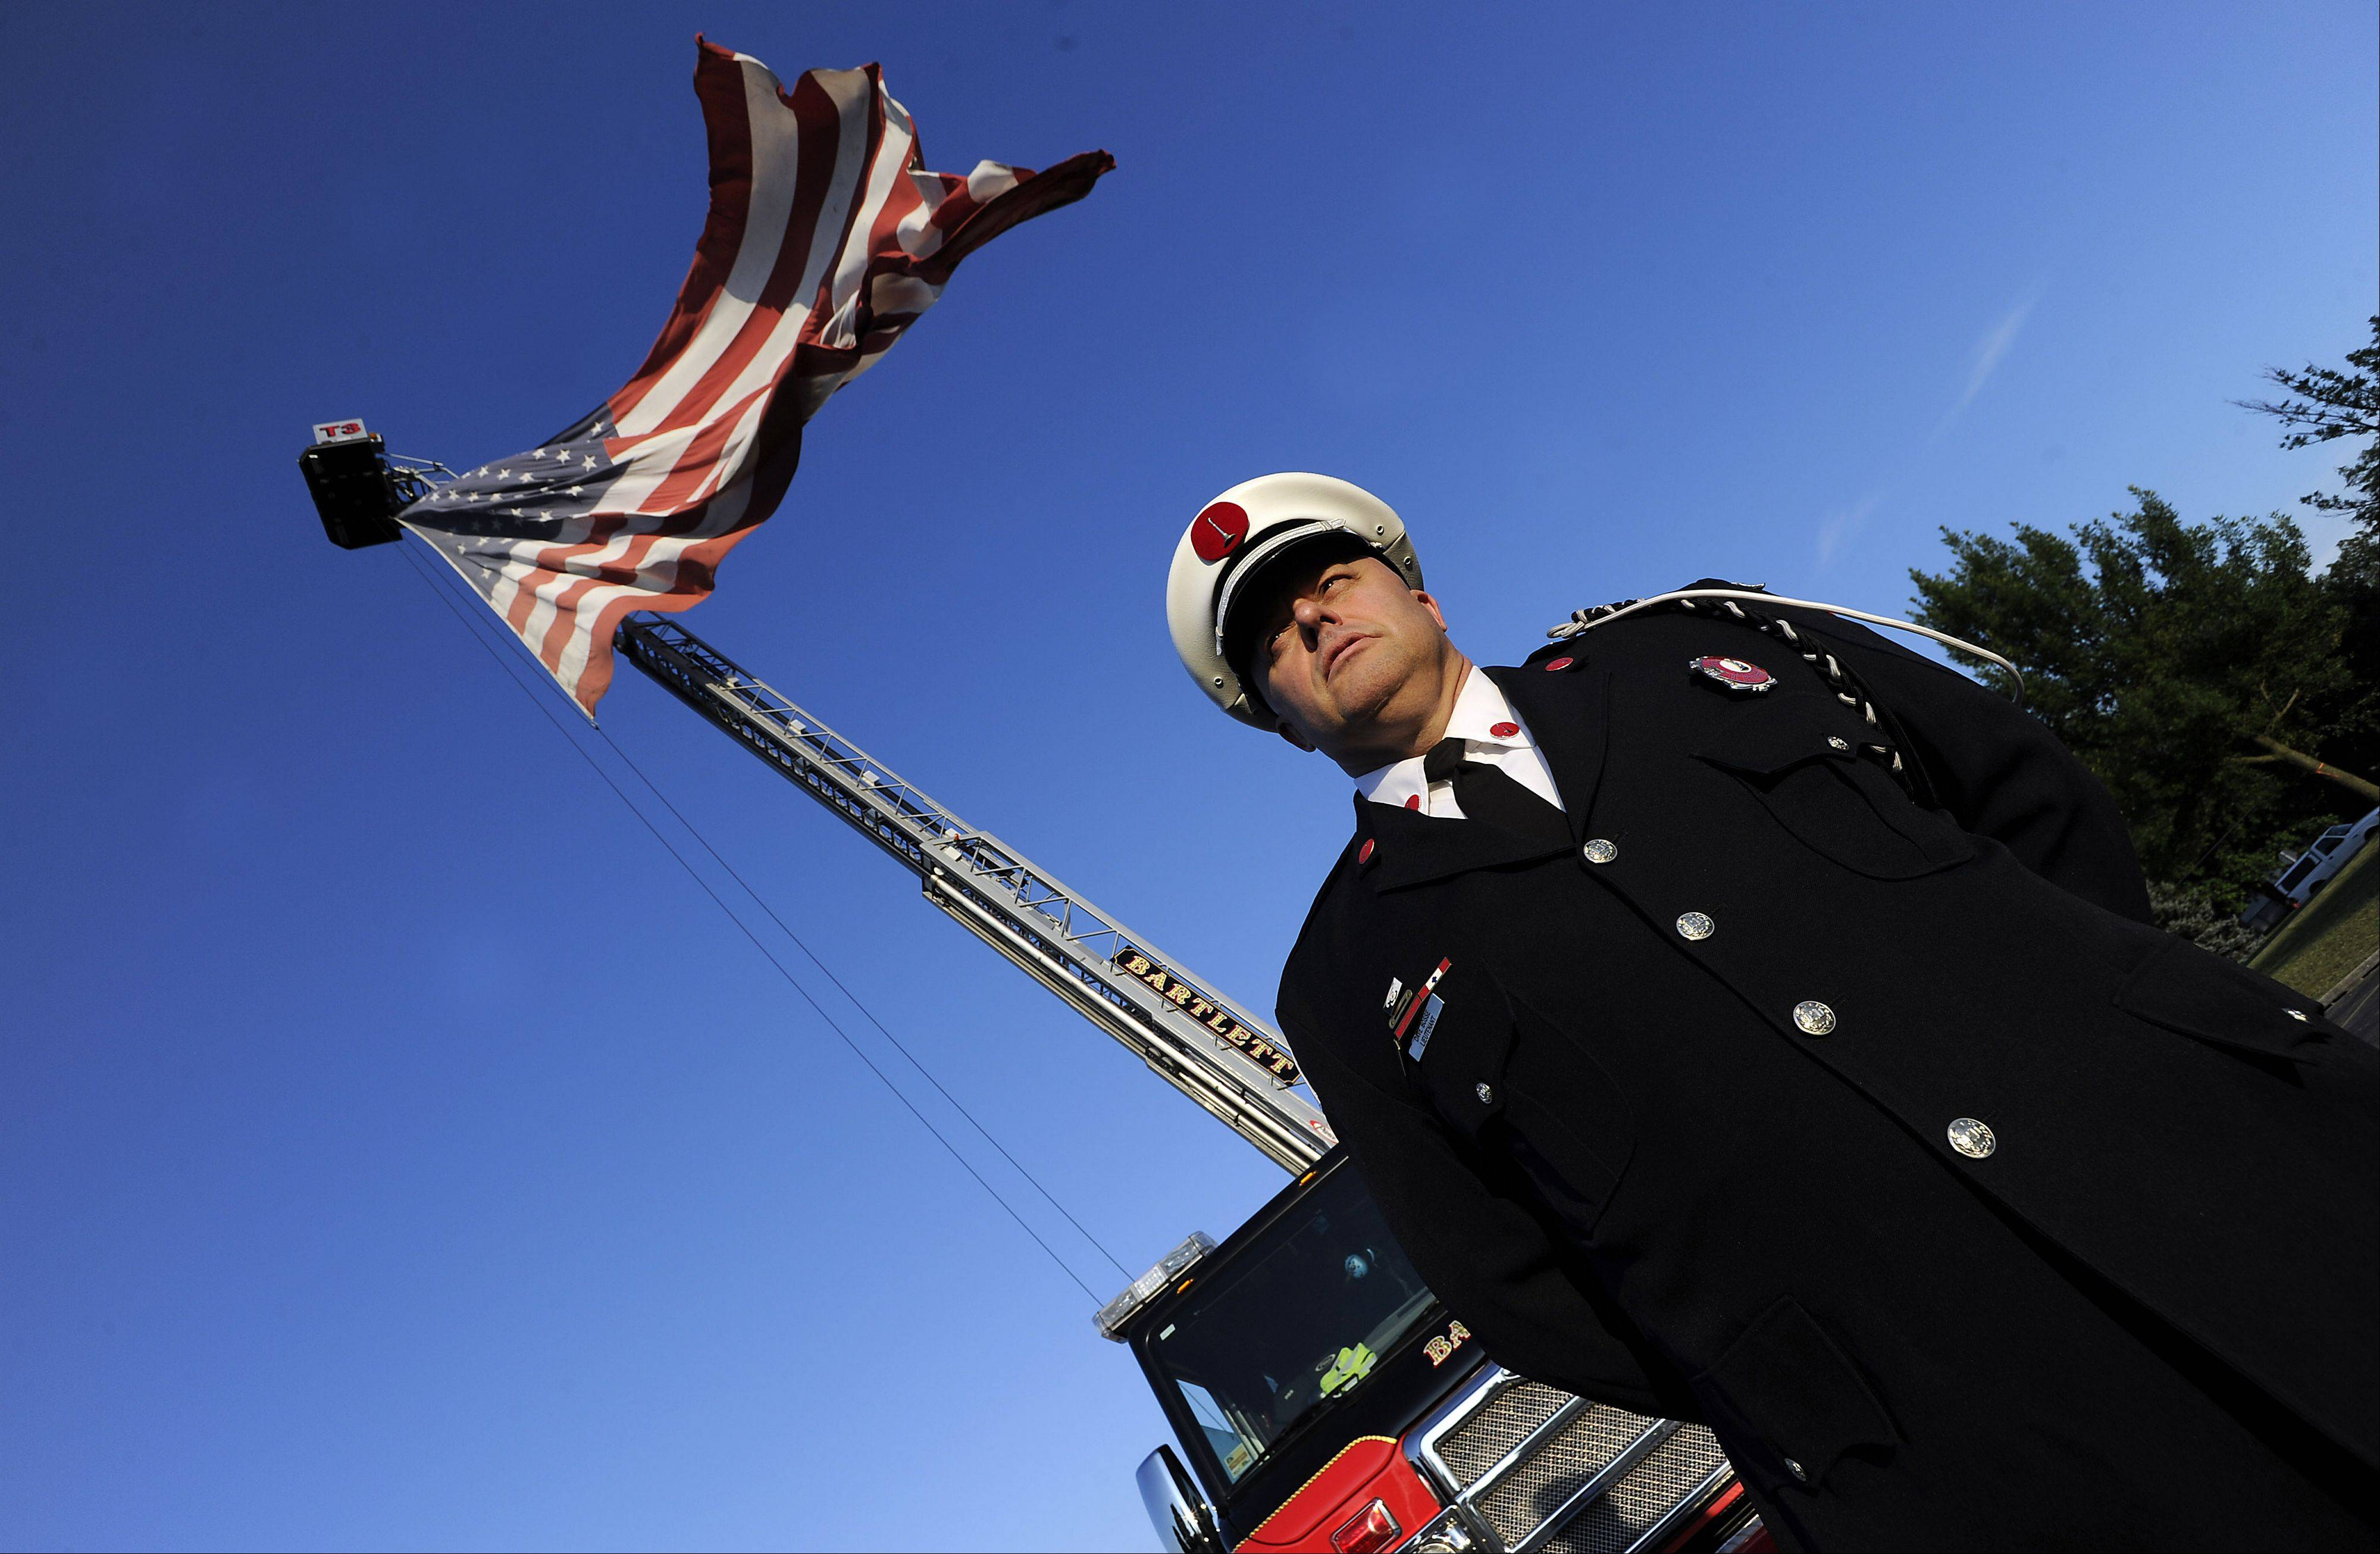 Lieutenant Dave Bosse of the Bartlett Fire Department stands at attention as the American flag waves above their fire truck.